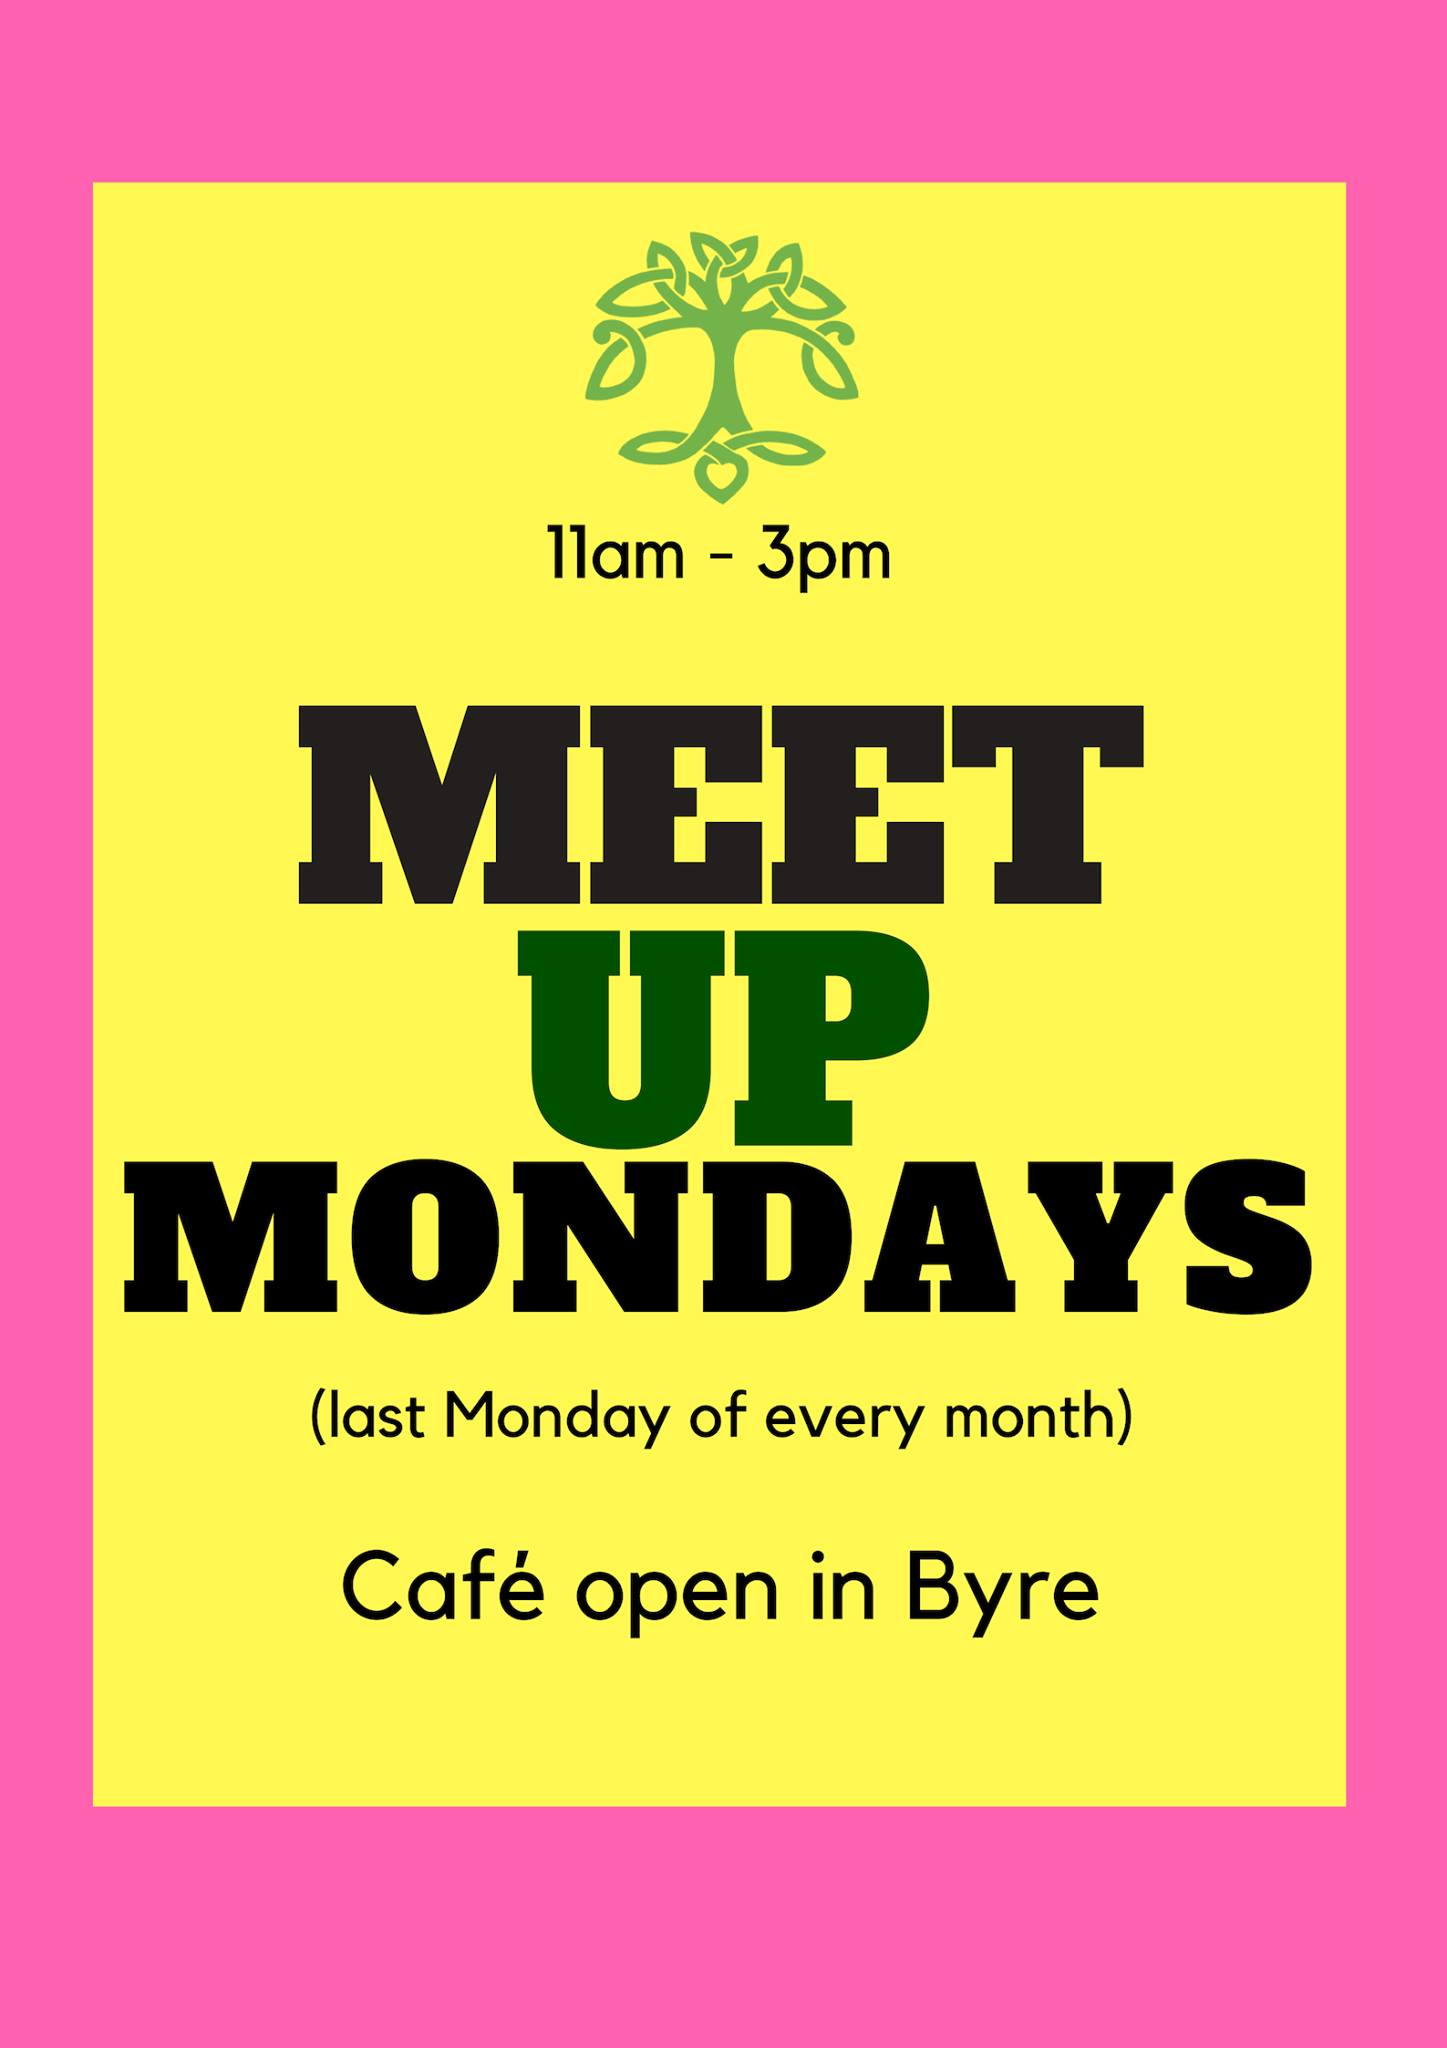 Meet-up Monday